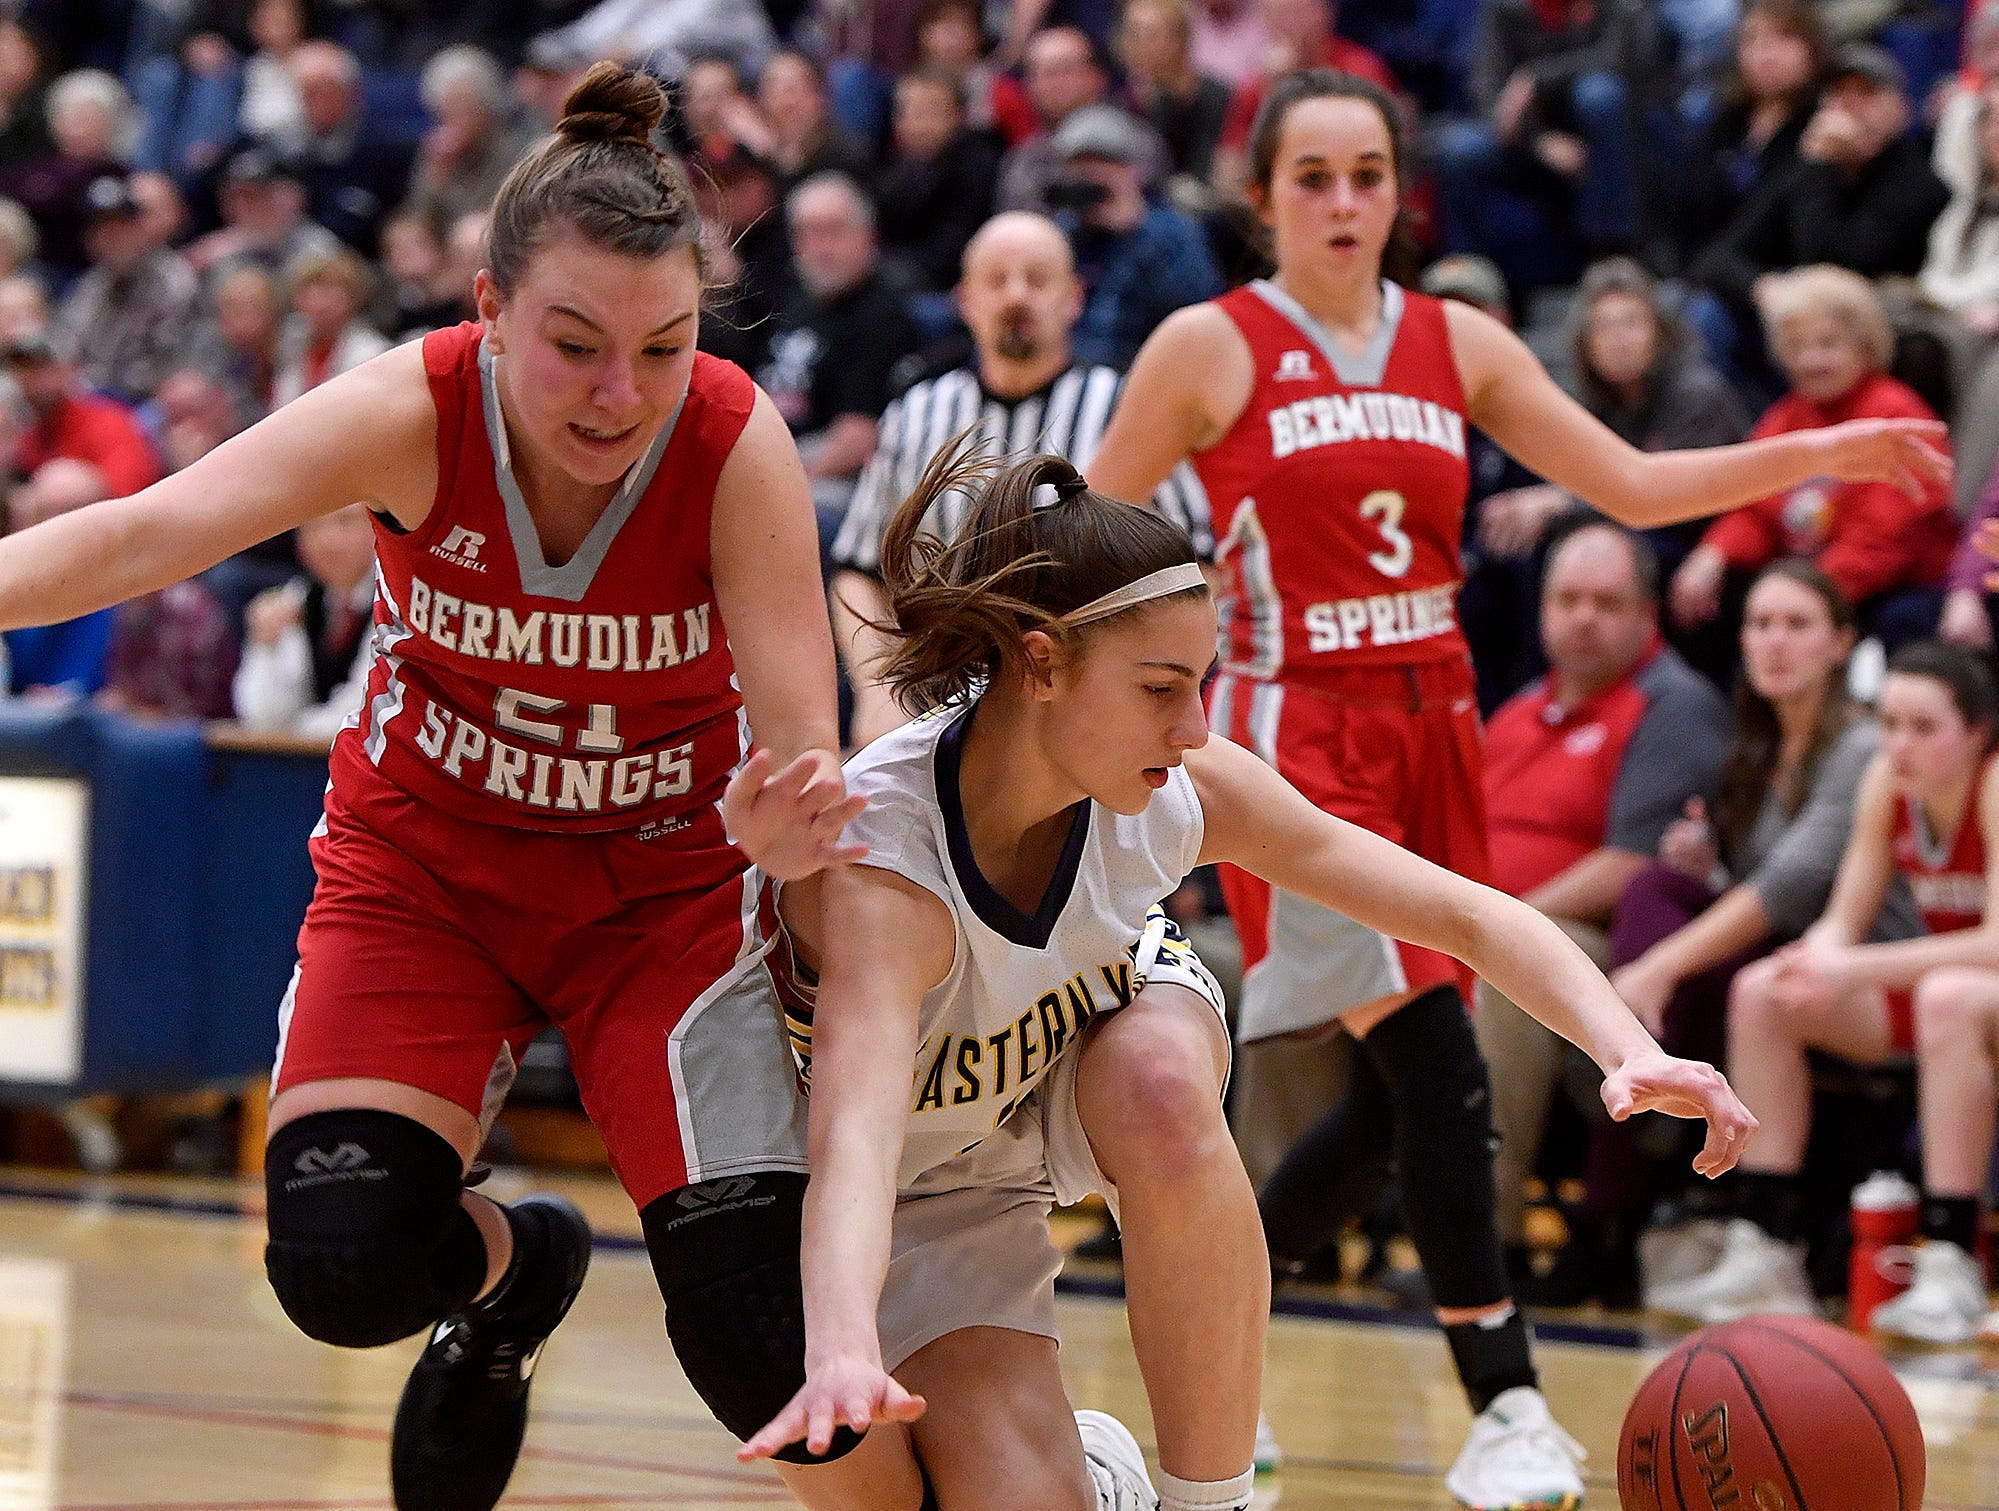 Bermudian Springs'a Keri Spealman blocks Victoria Zerbe of Eastern York as she stumbles with the ball during the District 3 Class 4-A fifth place basketball game, Thursday, Feb. 28, 2019.John A. Pavoncello photo